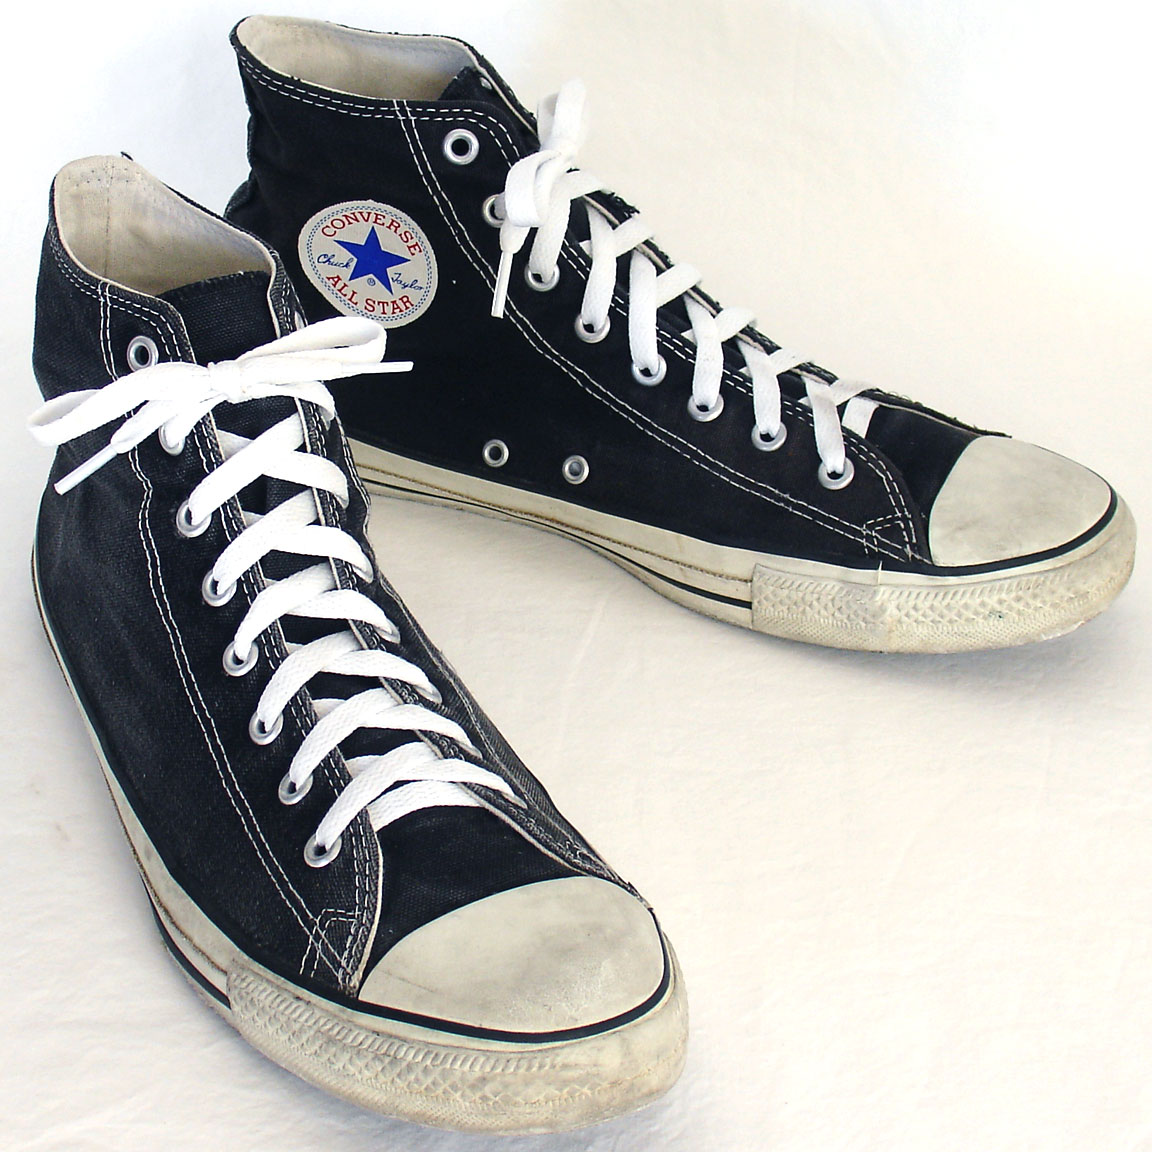 Vintage American-made Converse All Star Chuck Taylor black hi-top shoes for  sale 9371d1cb6